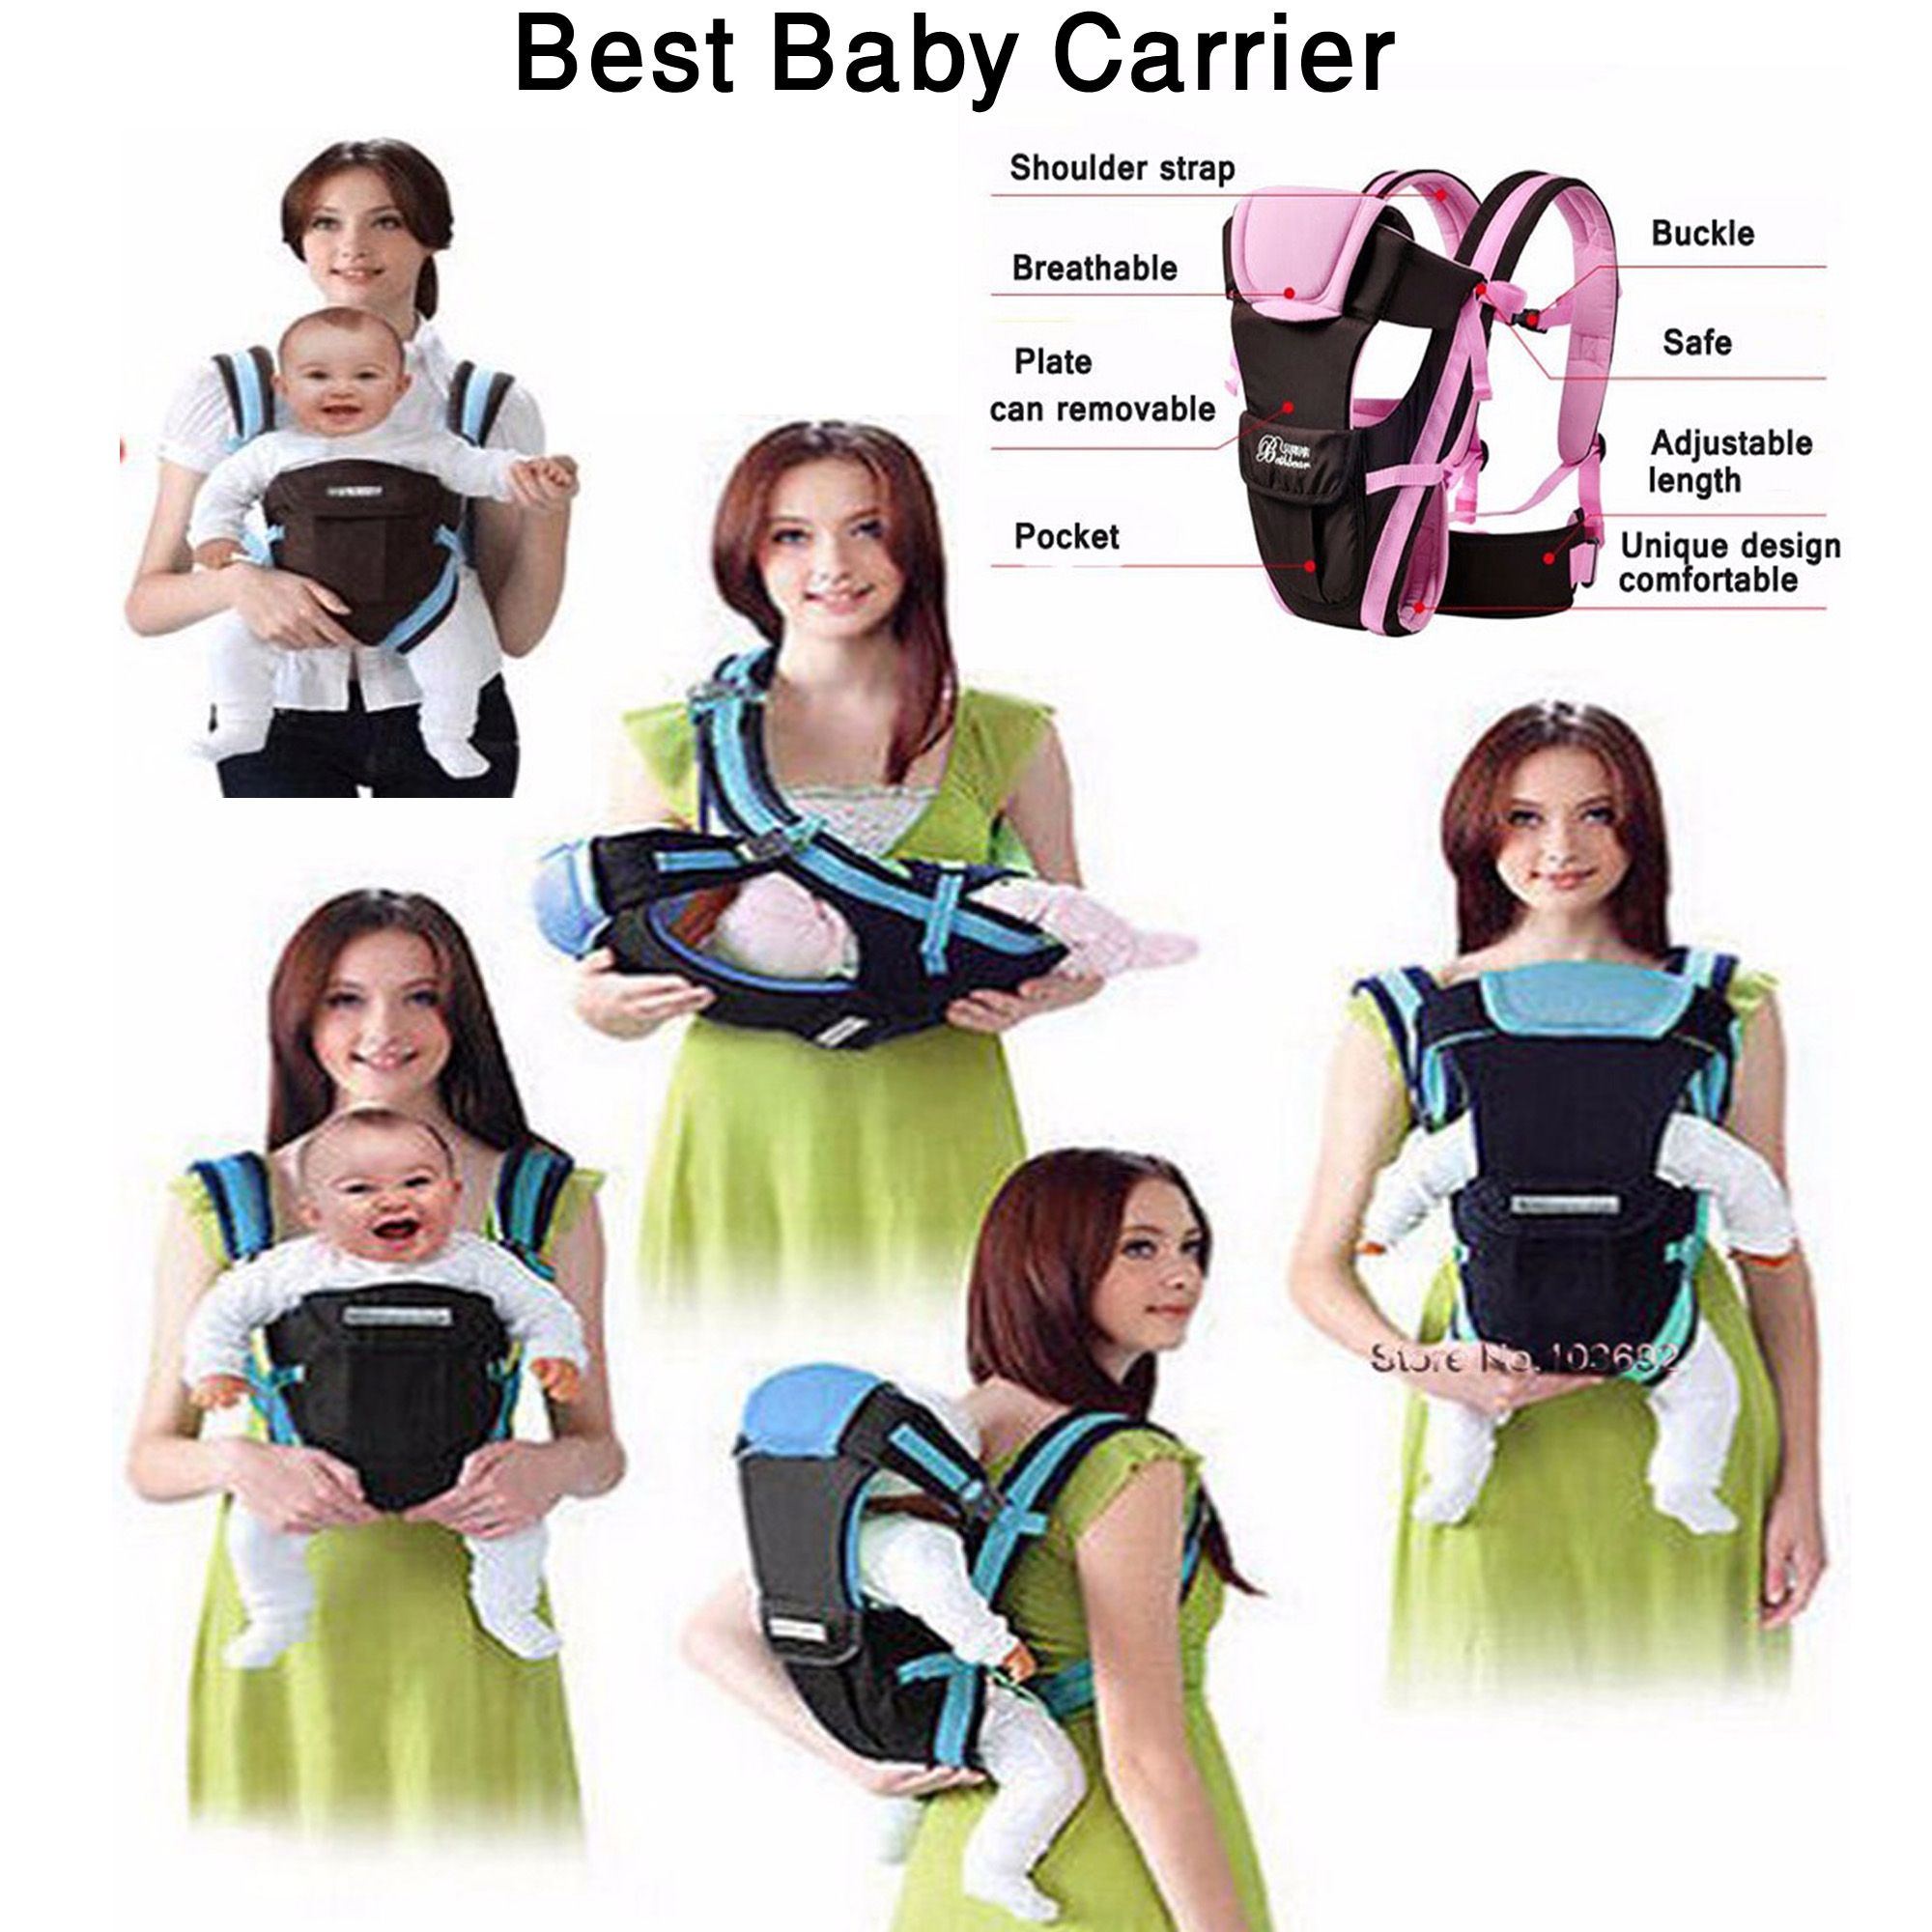 Beth Bear 0 30 Months Breathable Front Facing Baby Carrier 4 in 1